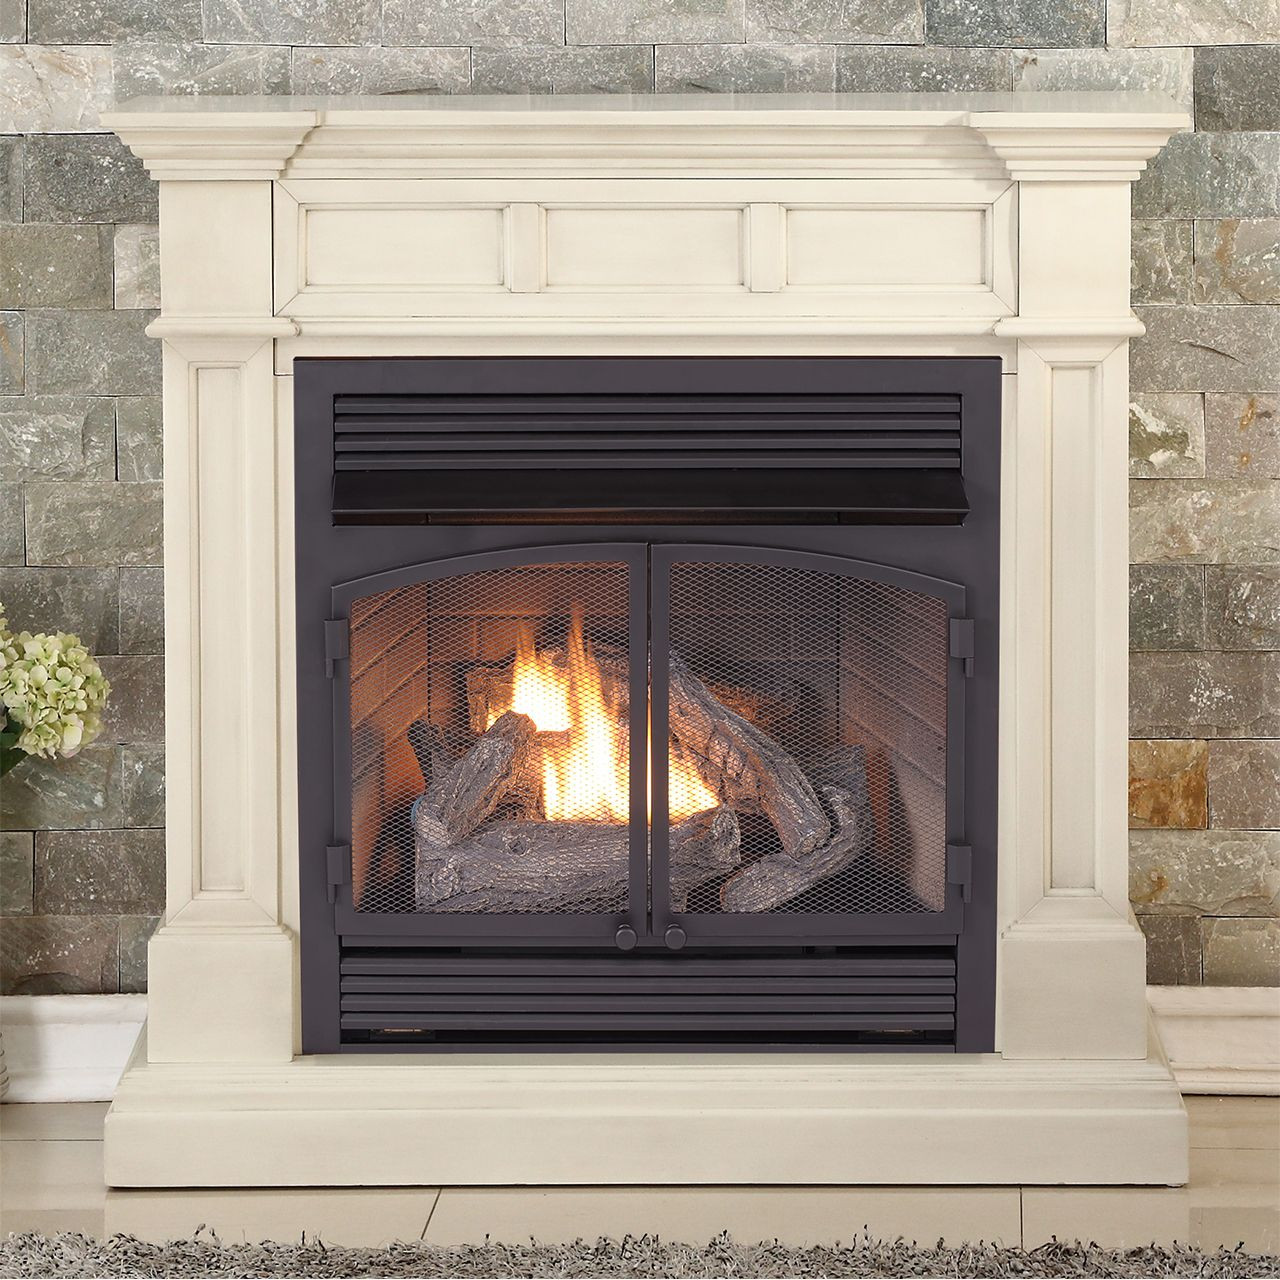 Standard Gas Fireplace Insert Dimensions Ventless Gas Fireplace Insert Bruin Blog